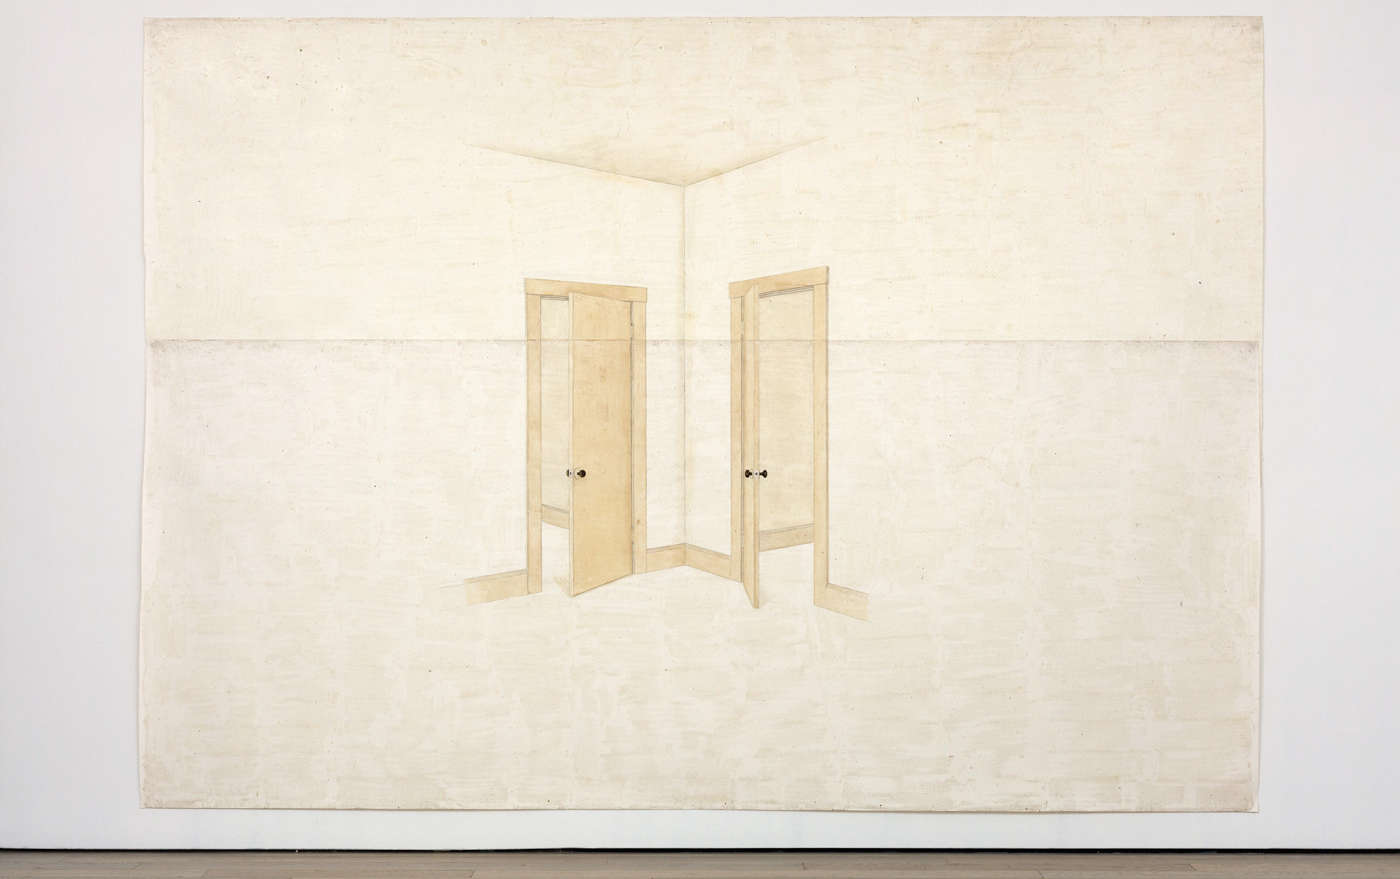 Toba Khedoori, Untitled (doors), 1999, Öl und Wachs auf Papier, 335,3 × 485,1 cm (Privatsammlung, Courtesy David Zwirner, New York / London, © Toba Khedoori, Courtesy Regen Projects, Los Angeles & David Zwirner, Foto: © Fredrik Nilsen)